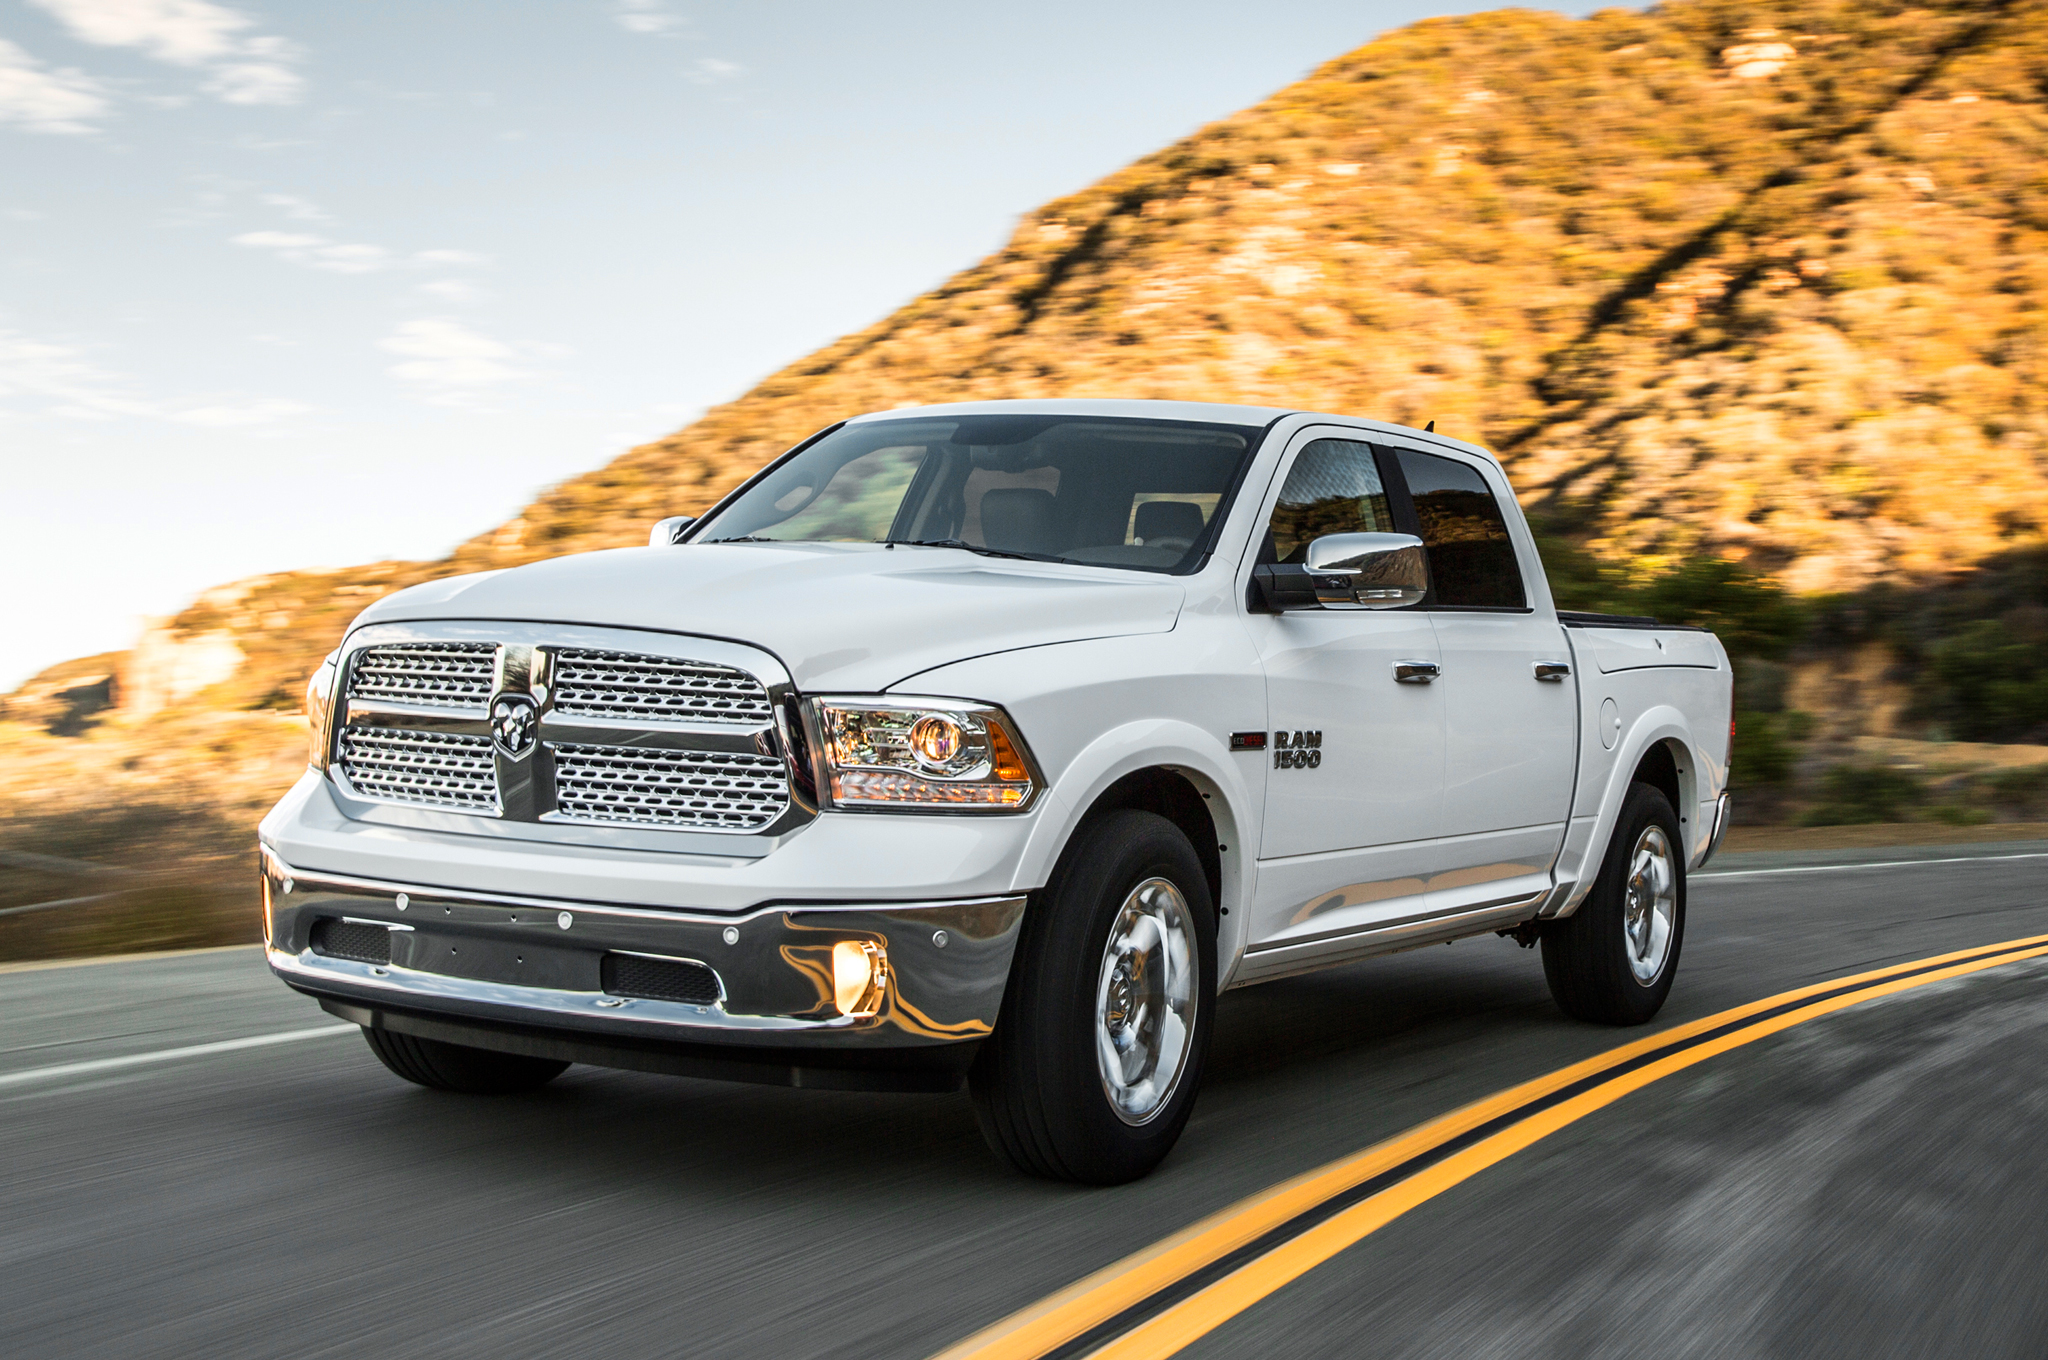 2013 dodge ram 1500 oil change frequency